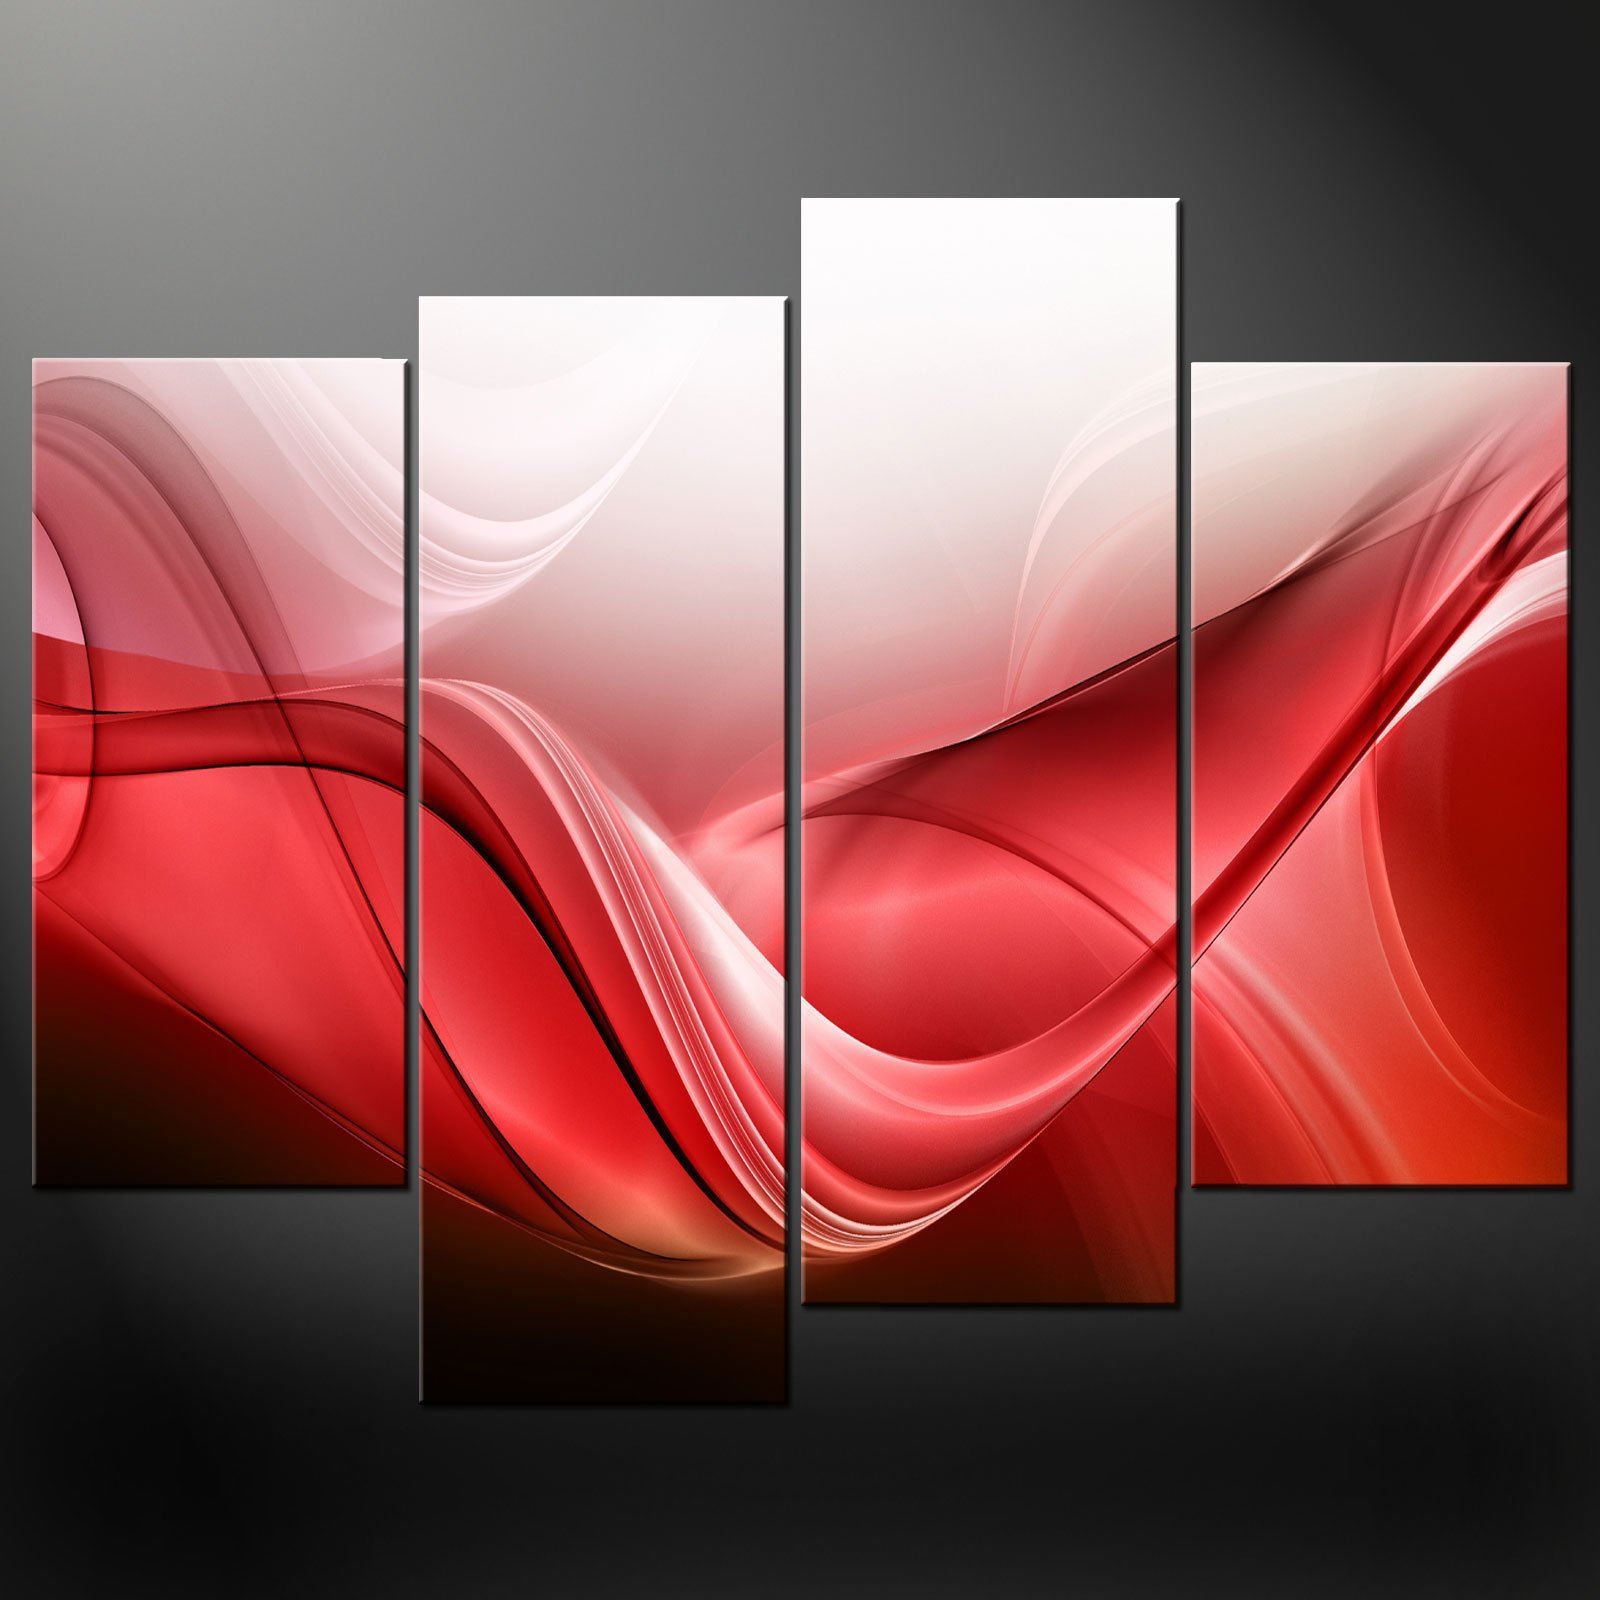 Red Wall Decor Art : Red waves canvas wall art pictures prints decor larger